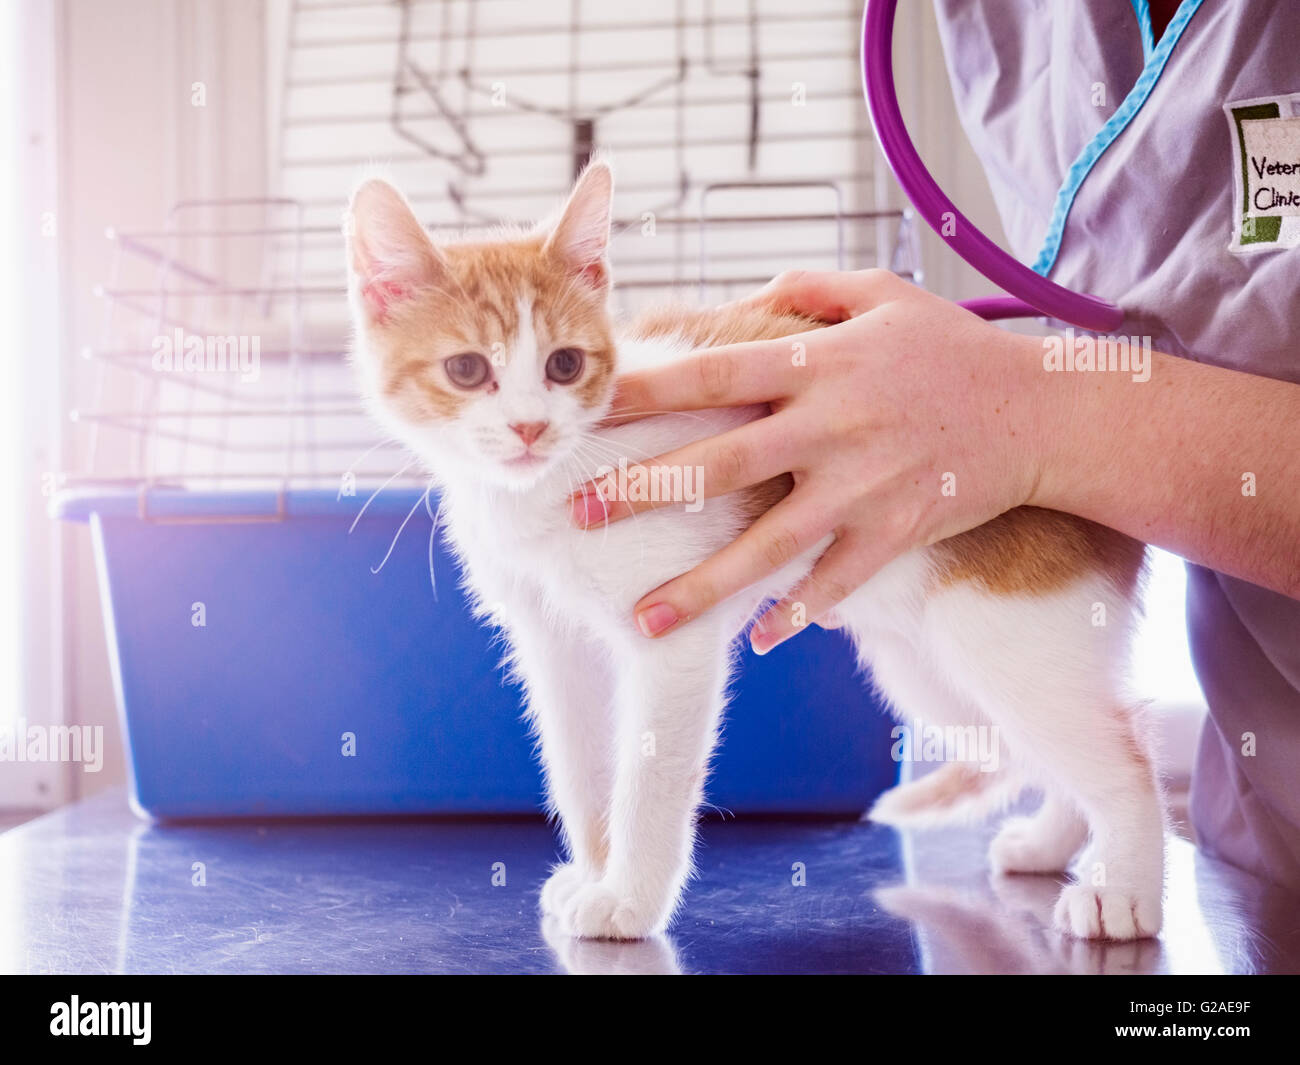 Vet examining kitten Stock Photo